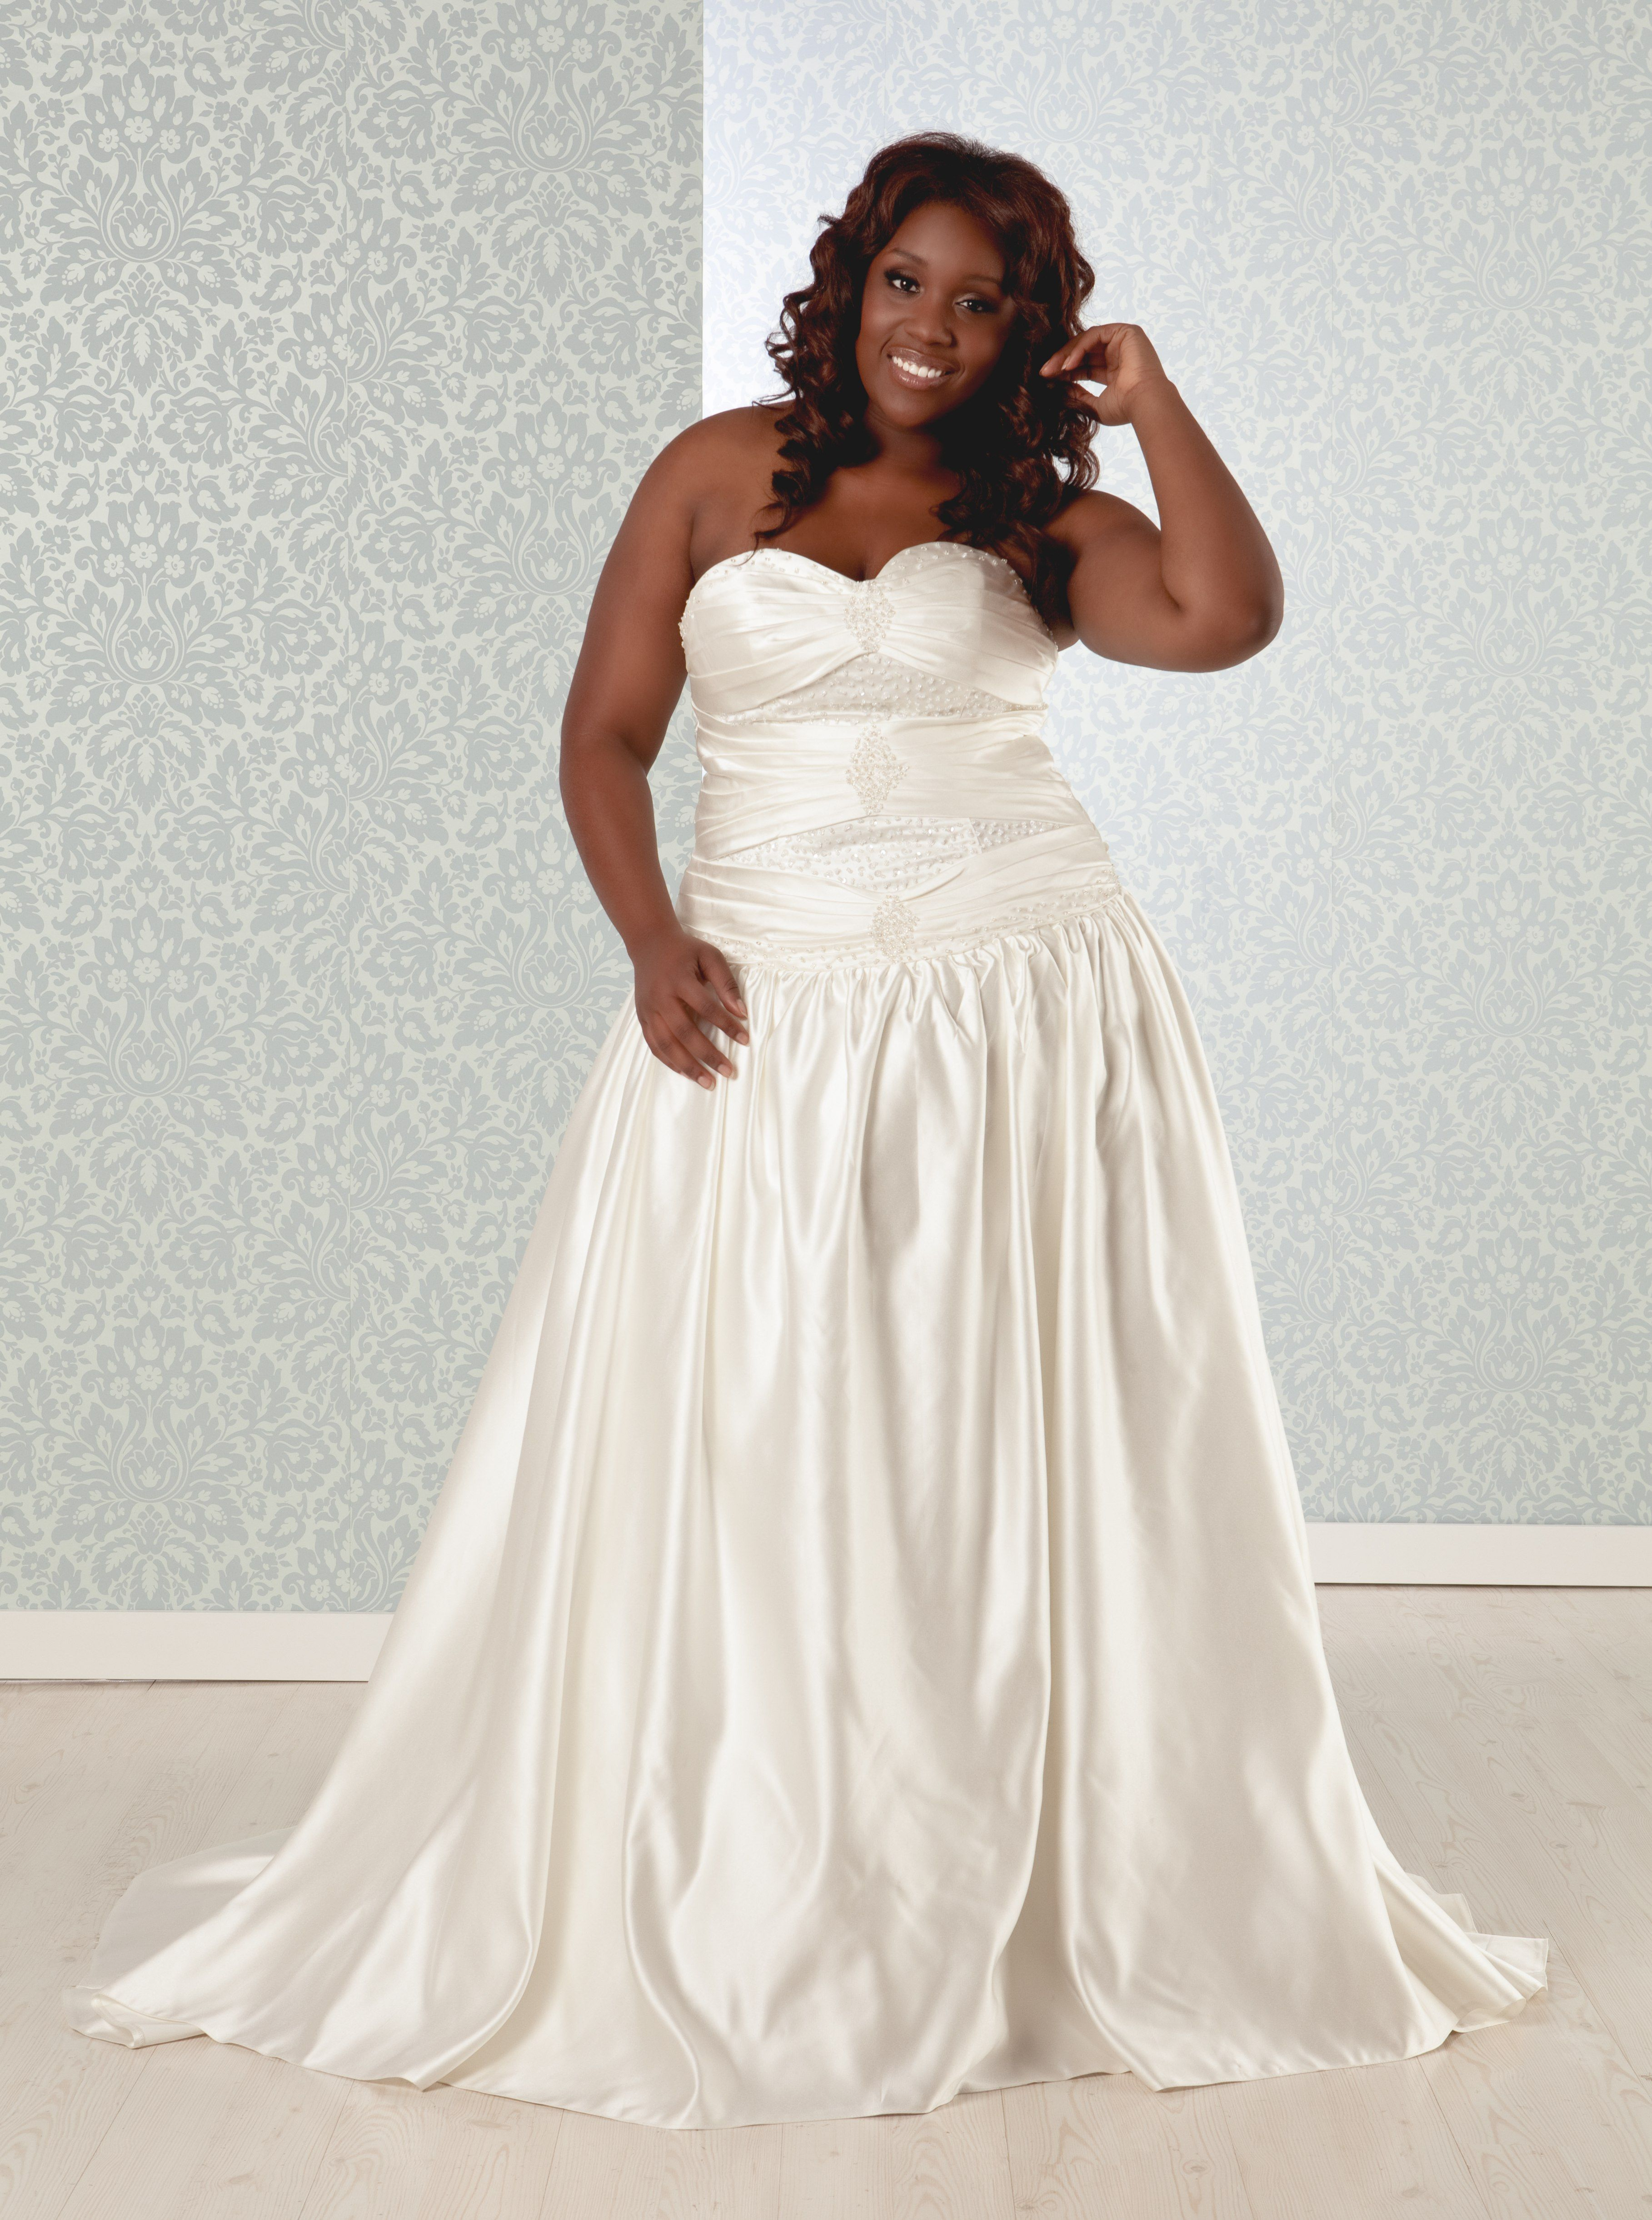 Real Size Bride | Plus size wedding gowns, Used wedding ...